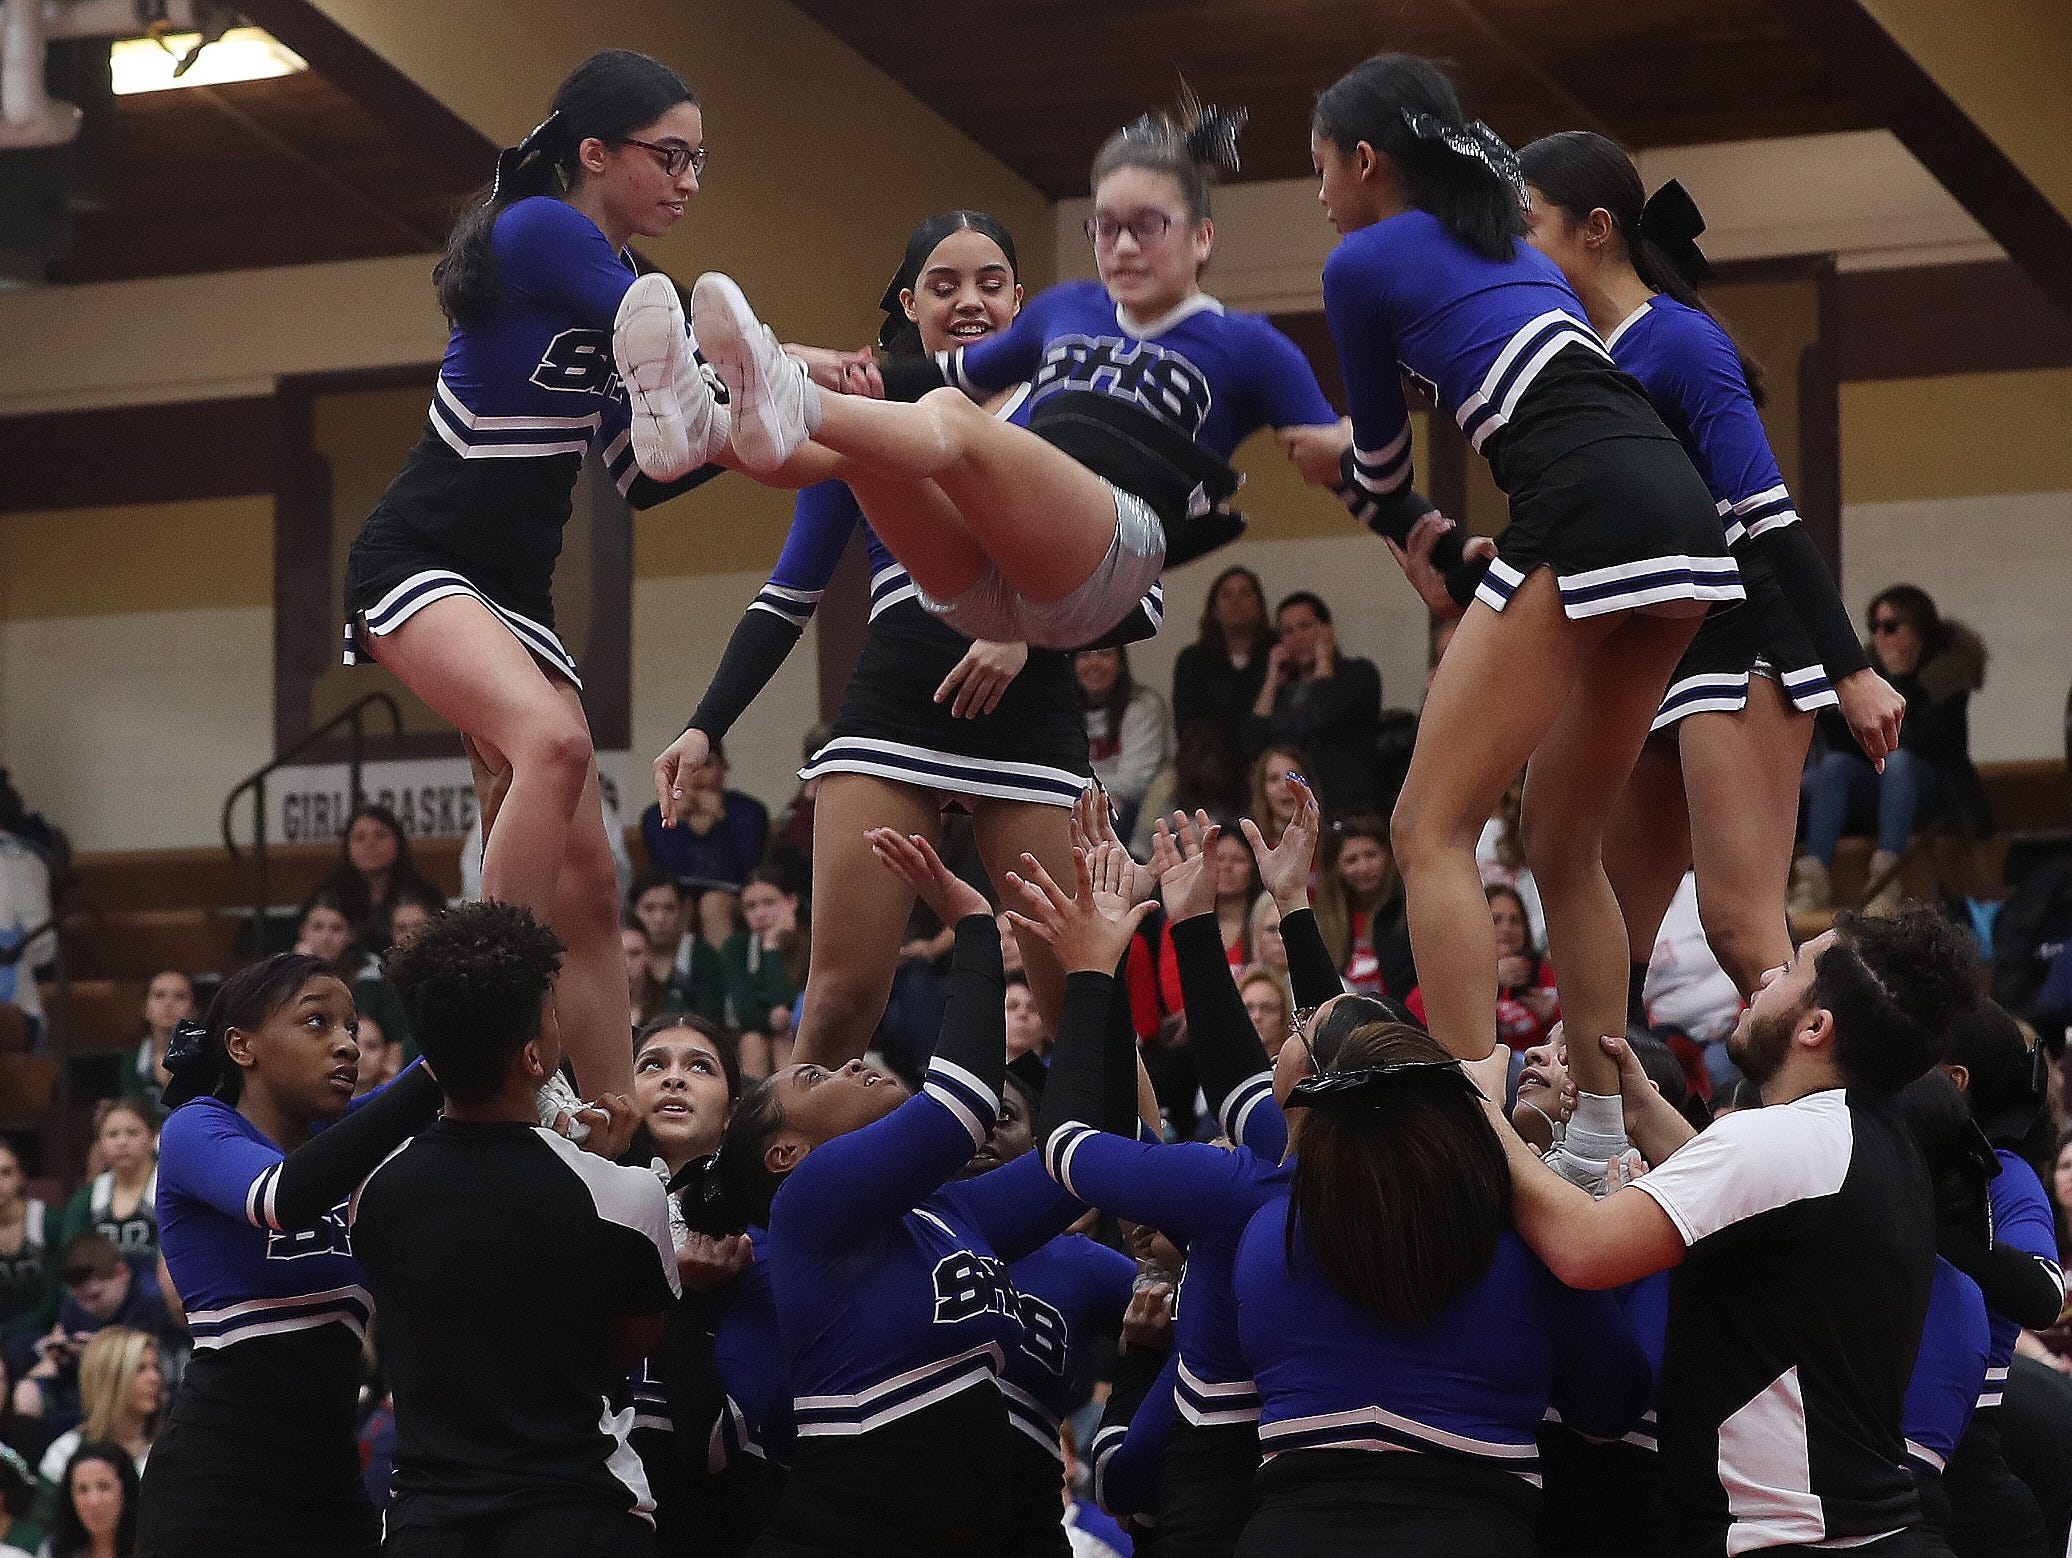 Saunders High School competes during the Section 1 cheerleading championships at Arlington High School in Freedom Plains Feb. 16, 2019.